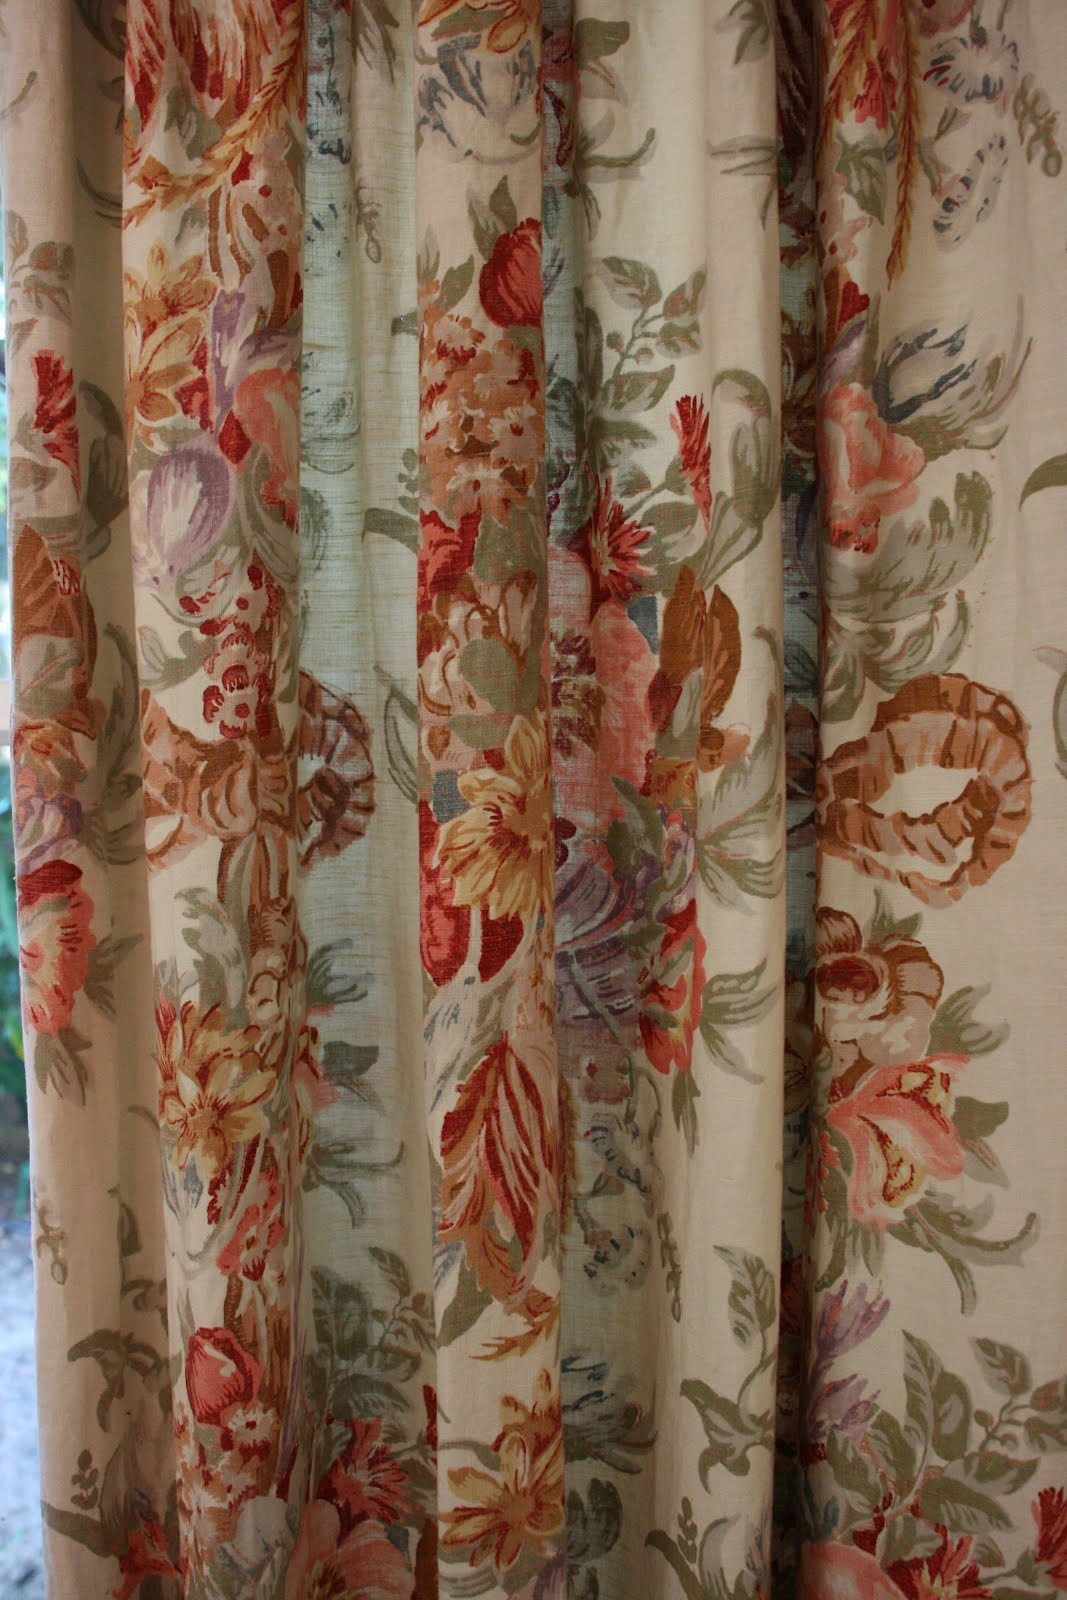 curtain rose bath shipping on orders roses free overstock product over bedding curtains peva famous home etched shower